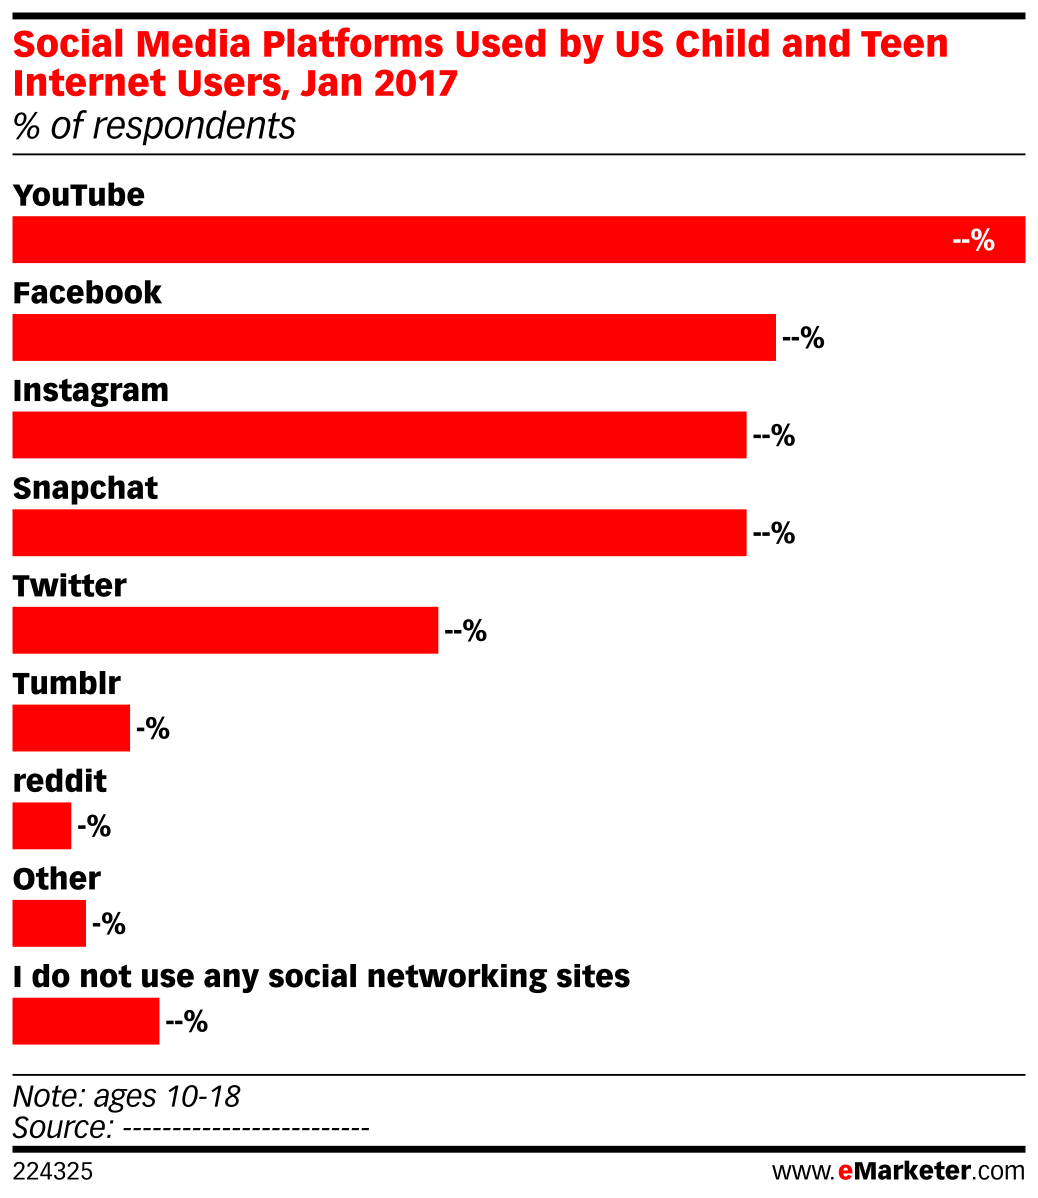 Social Media Platforms Used by US Child and Teen Internet Users, Jan 2017 (% of respondents)